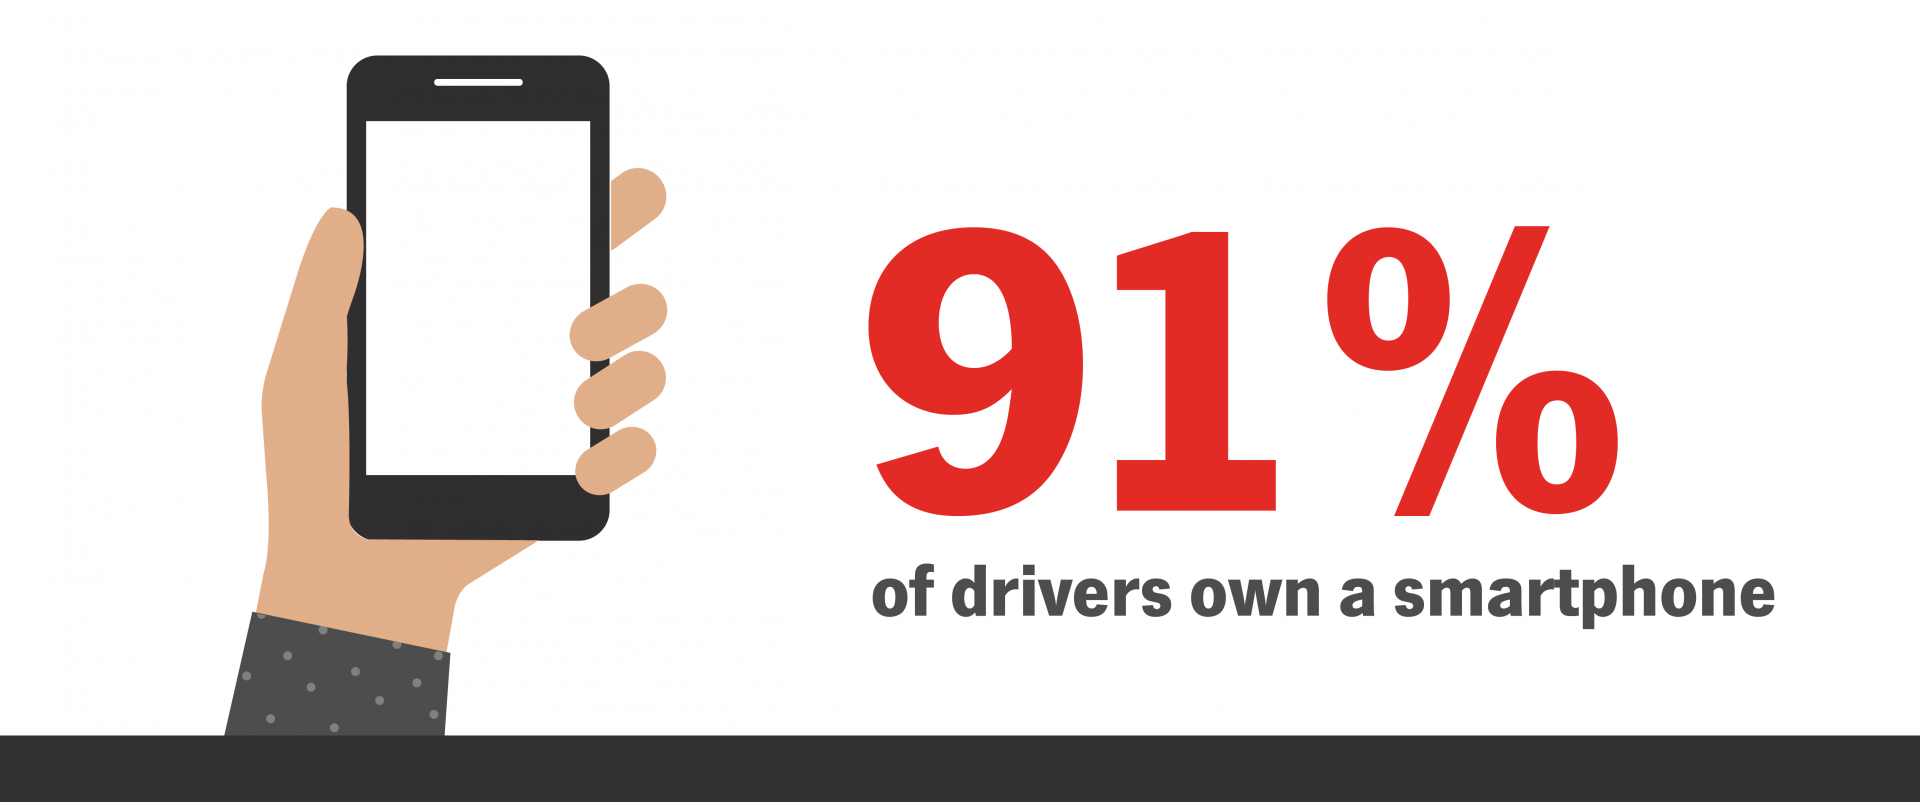 Distracted Driving - Smartphone Ownership